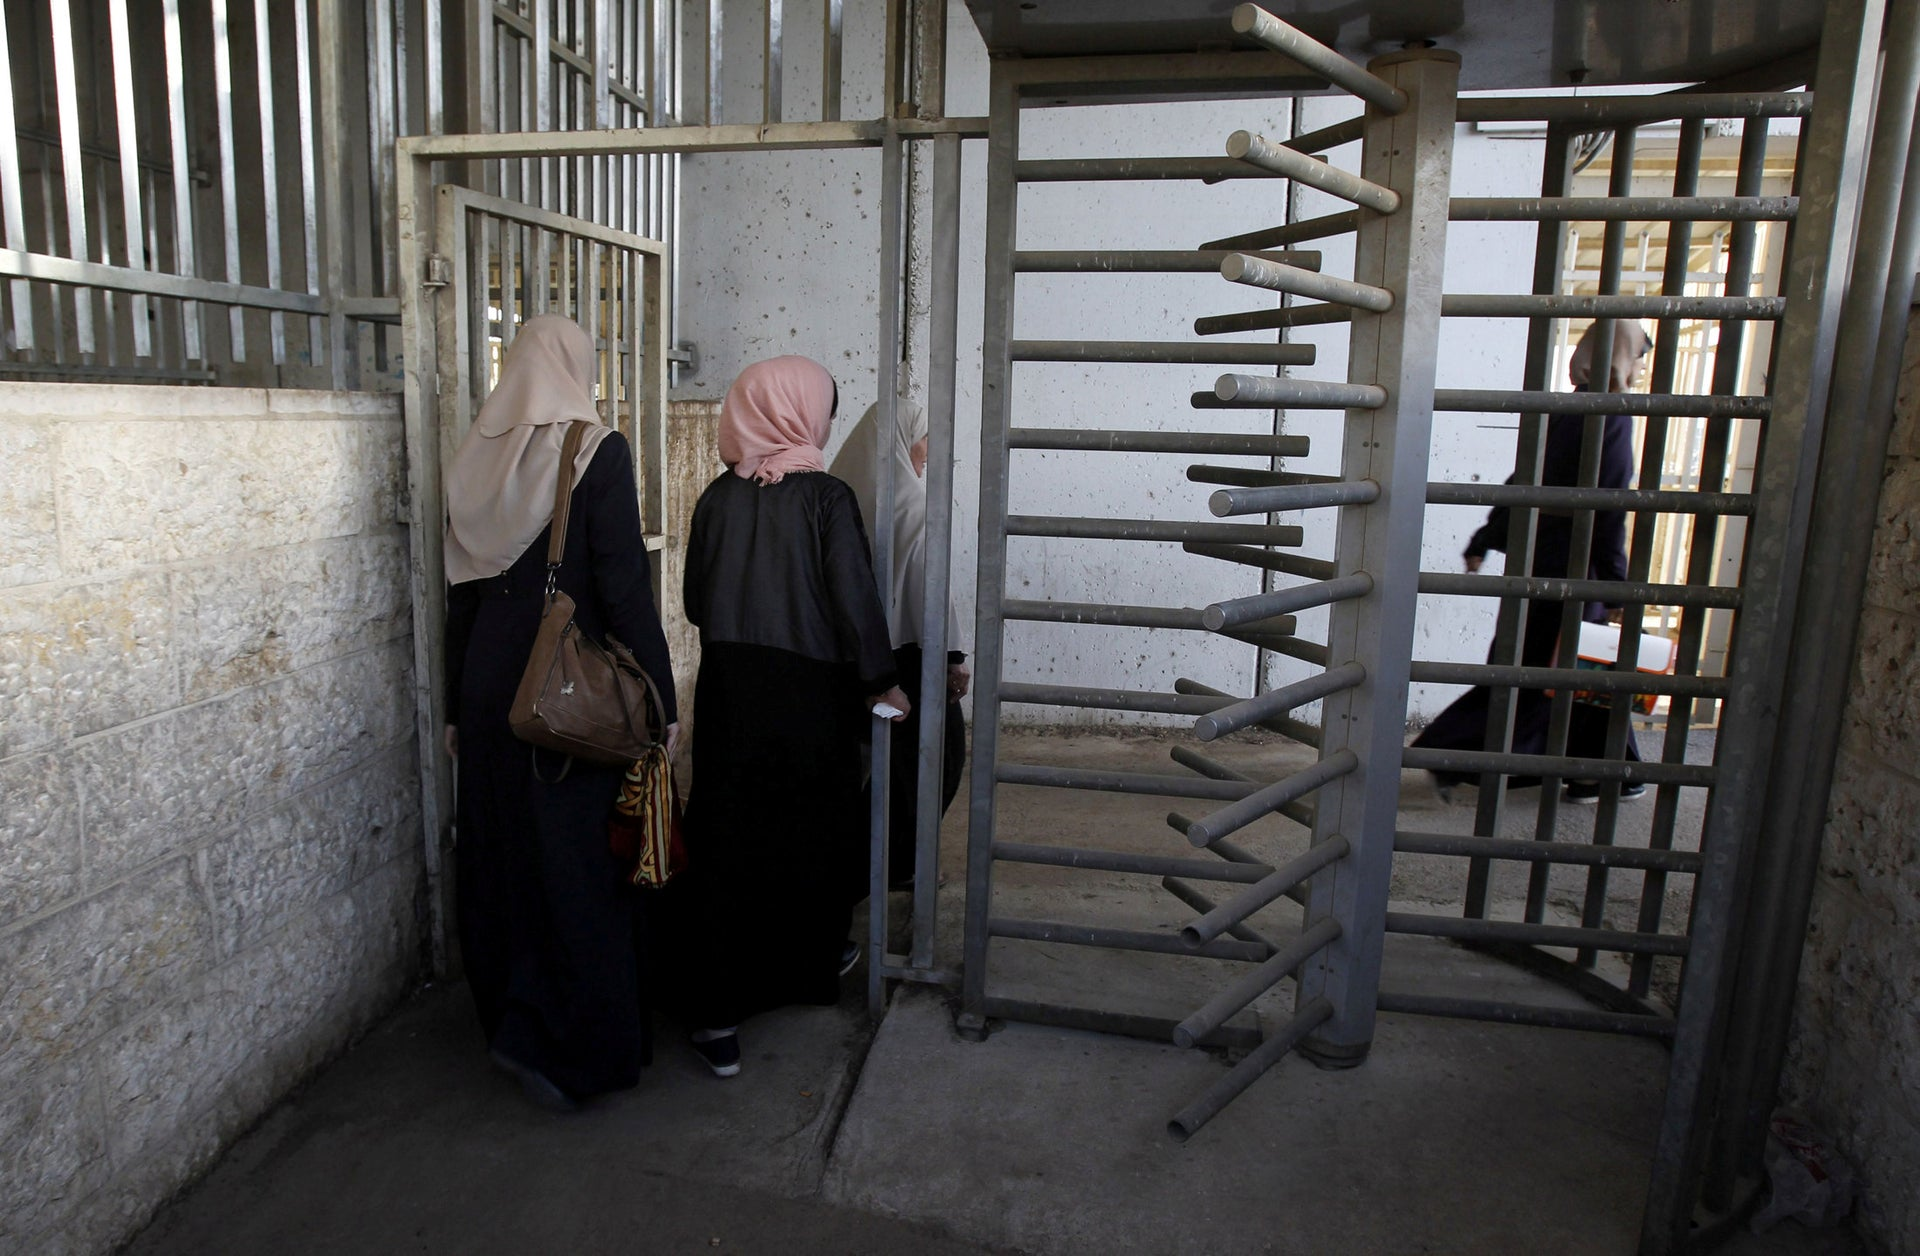 Palestinian women crossing an Israeli checkpoint between the West Bank town of Bethlehem and Jerusalem, May 2018.